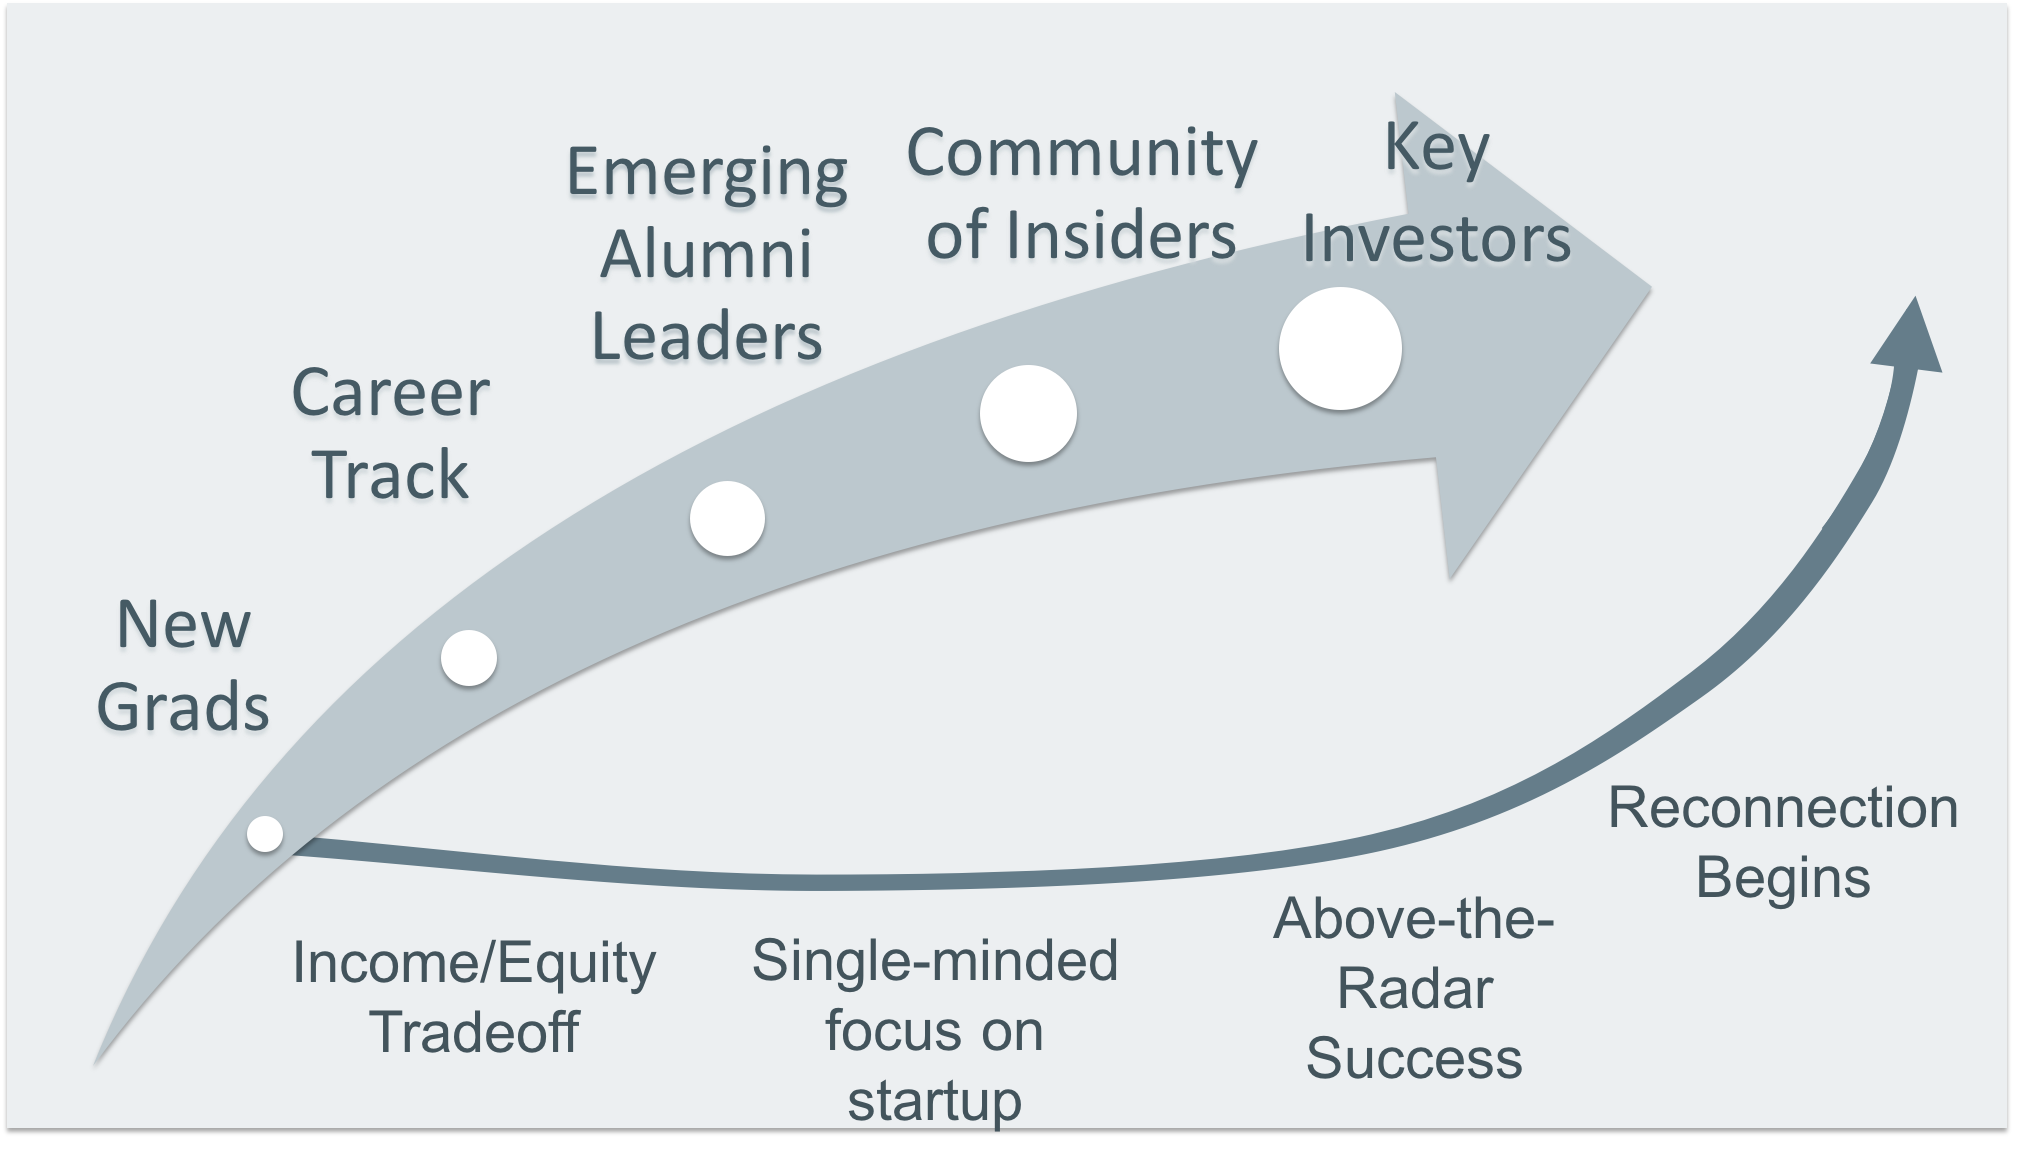 At bottom, the typical path of engagement and giving for alumni entrepreneur donors